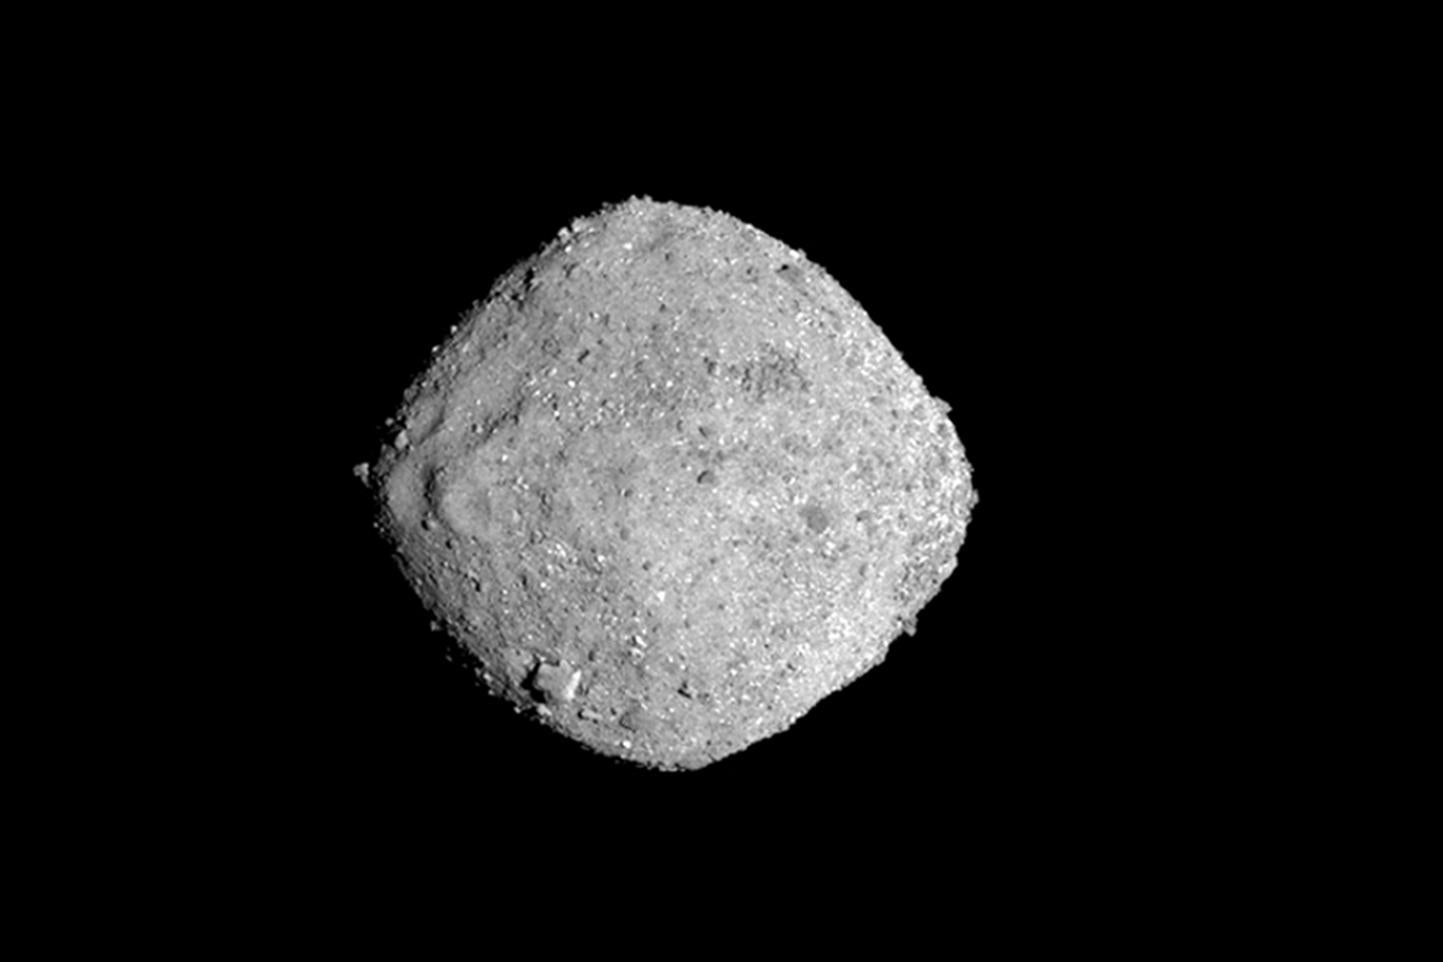 Unexpected discoveries from near-Earth asteroid Bennu about origins of life, Nasa reveals